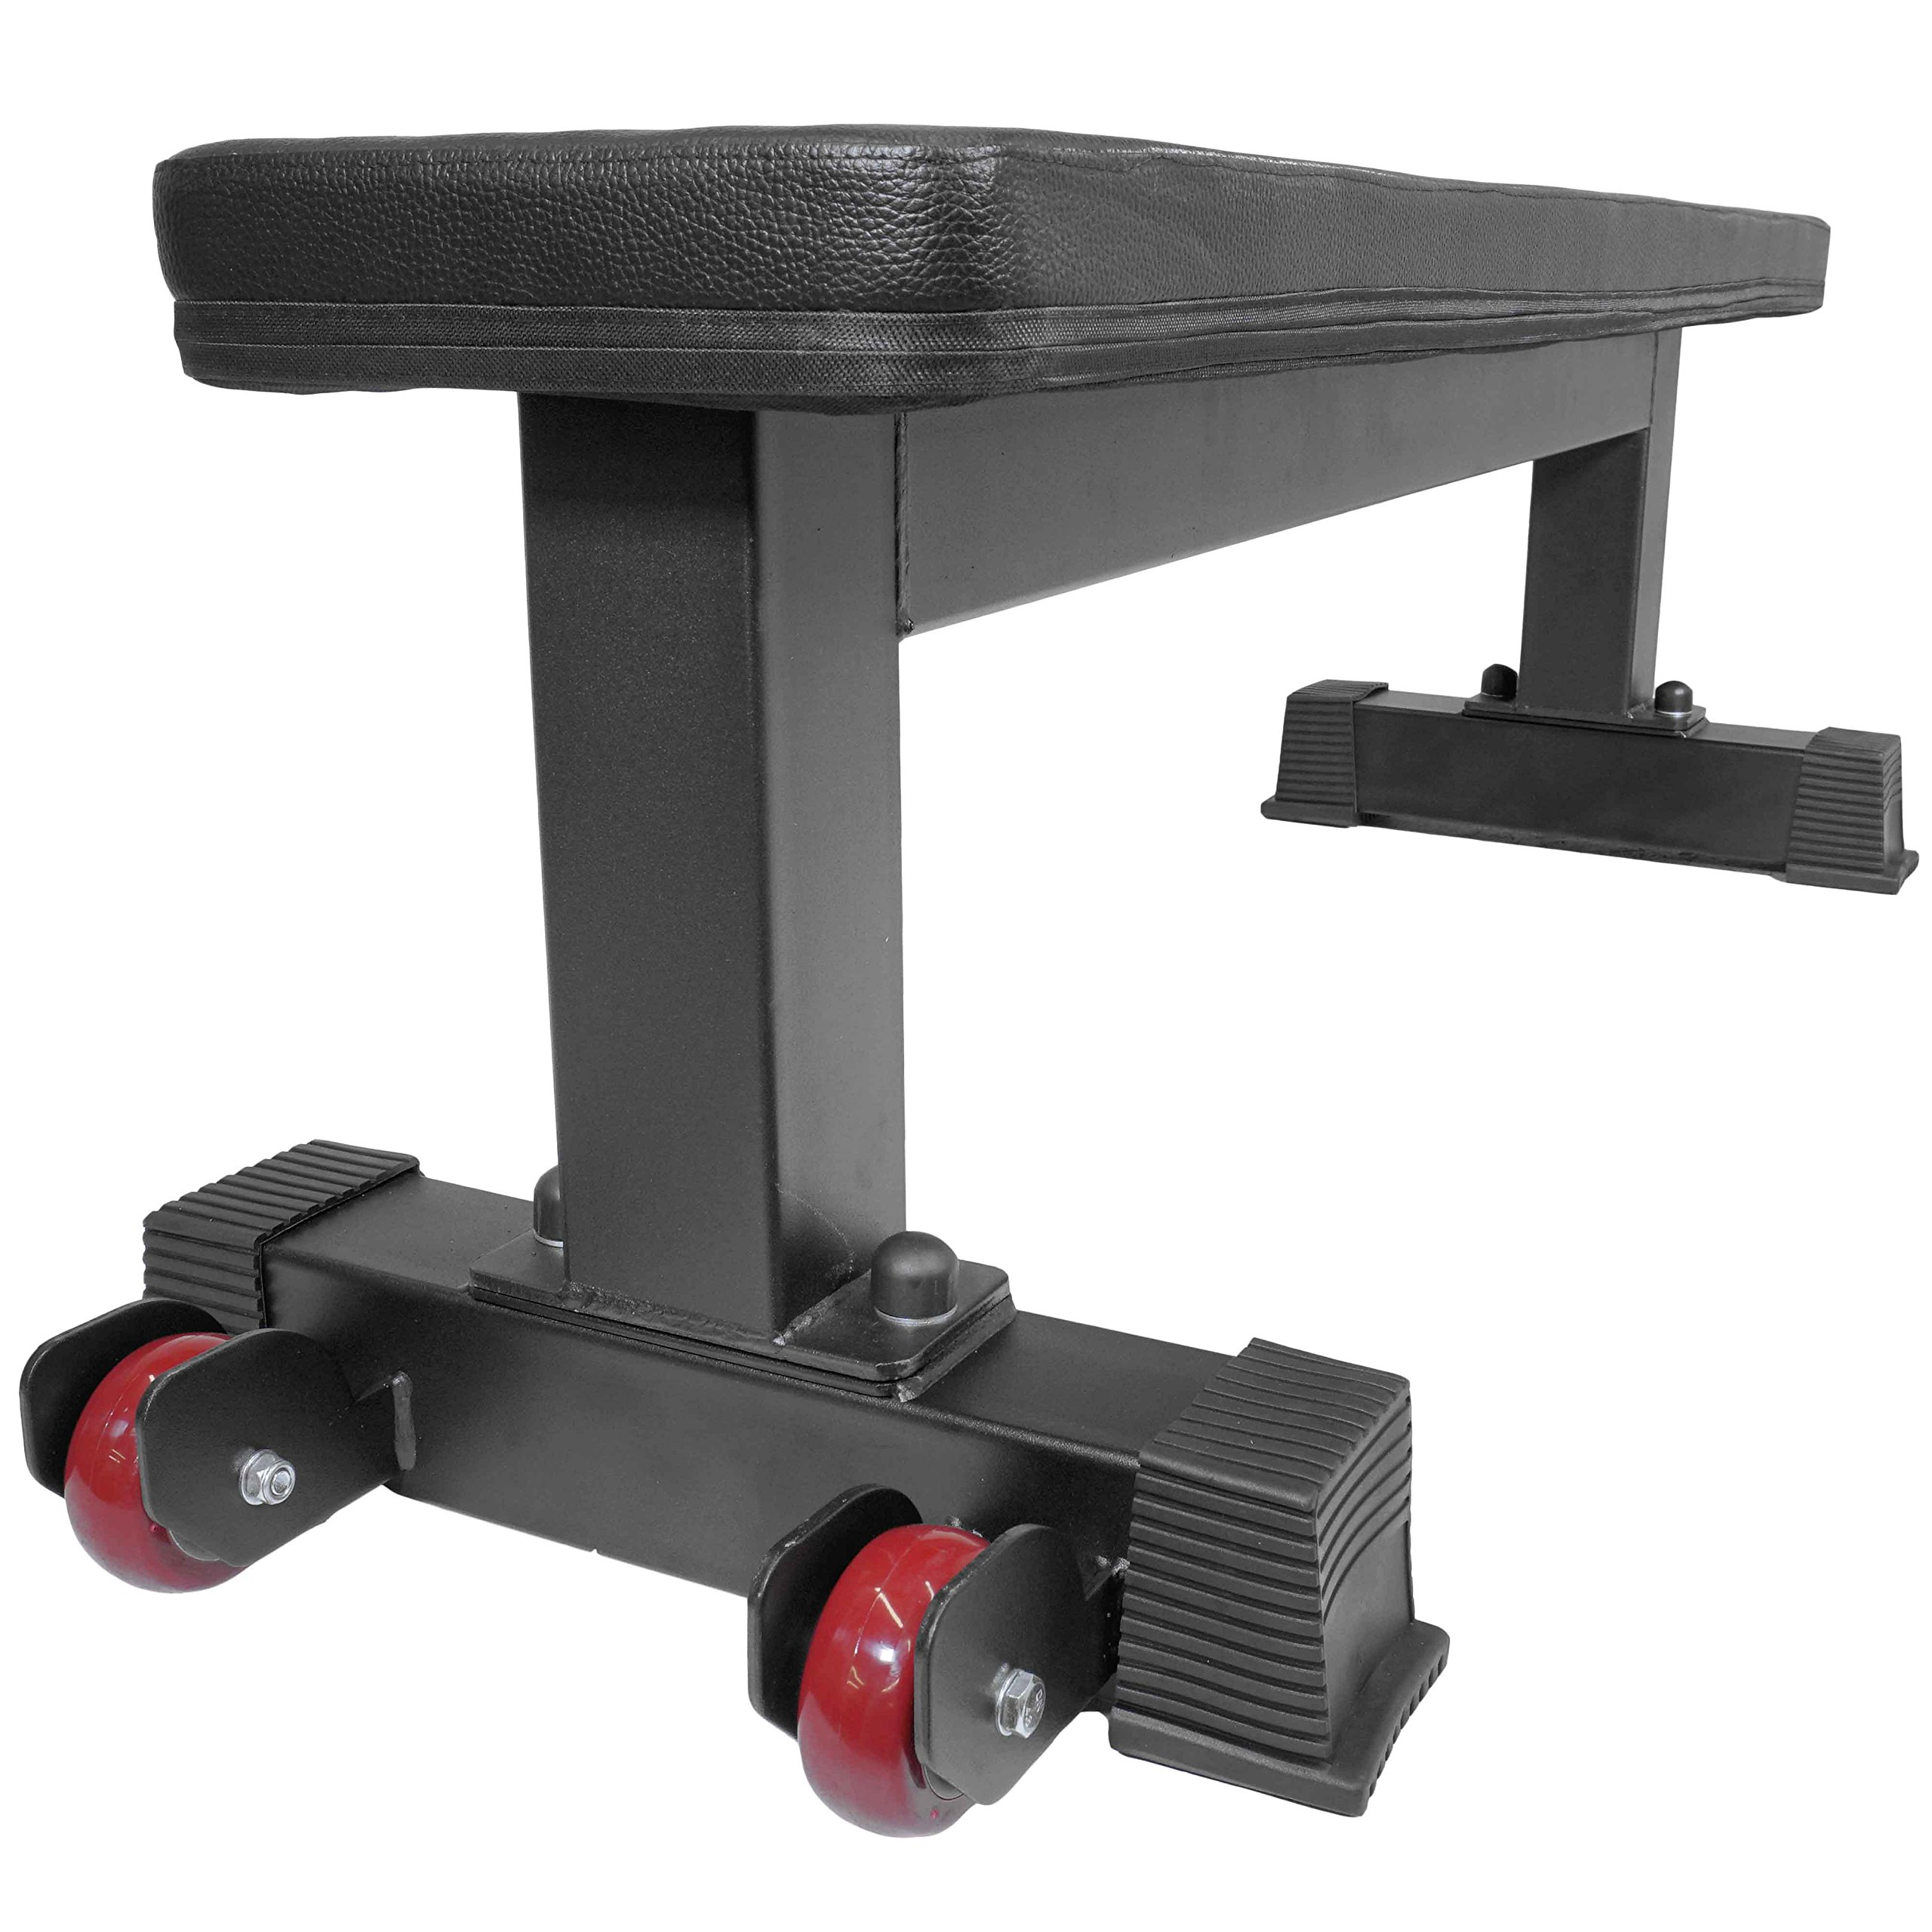 Titan Fitness Flat Weight Bench 1,000 lb Rated Capacity w/ Handle & Wheels by Titan Fitness (Image #4)